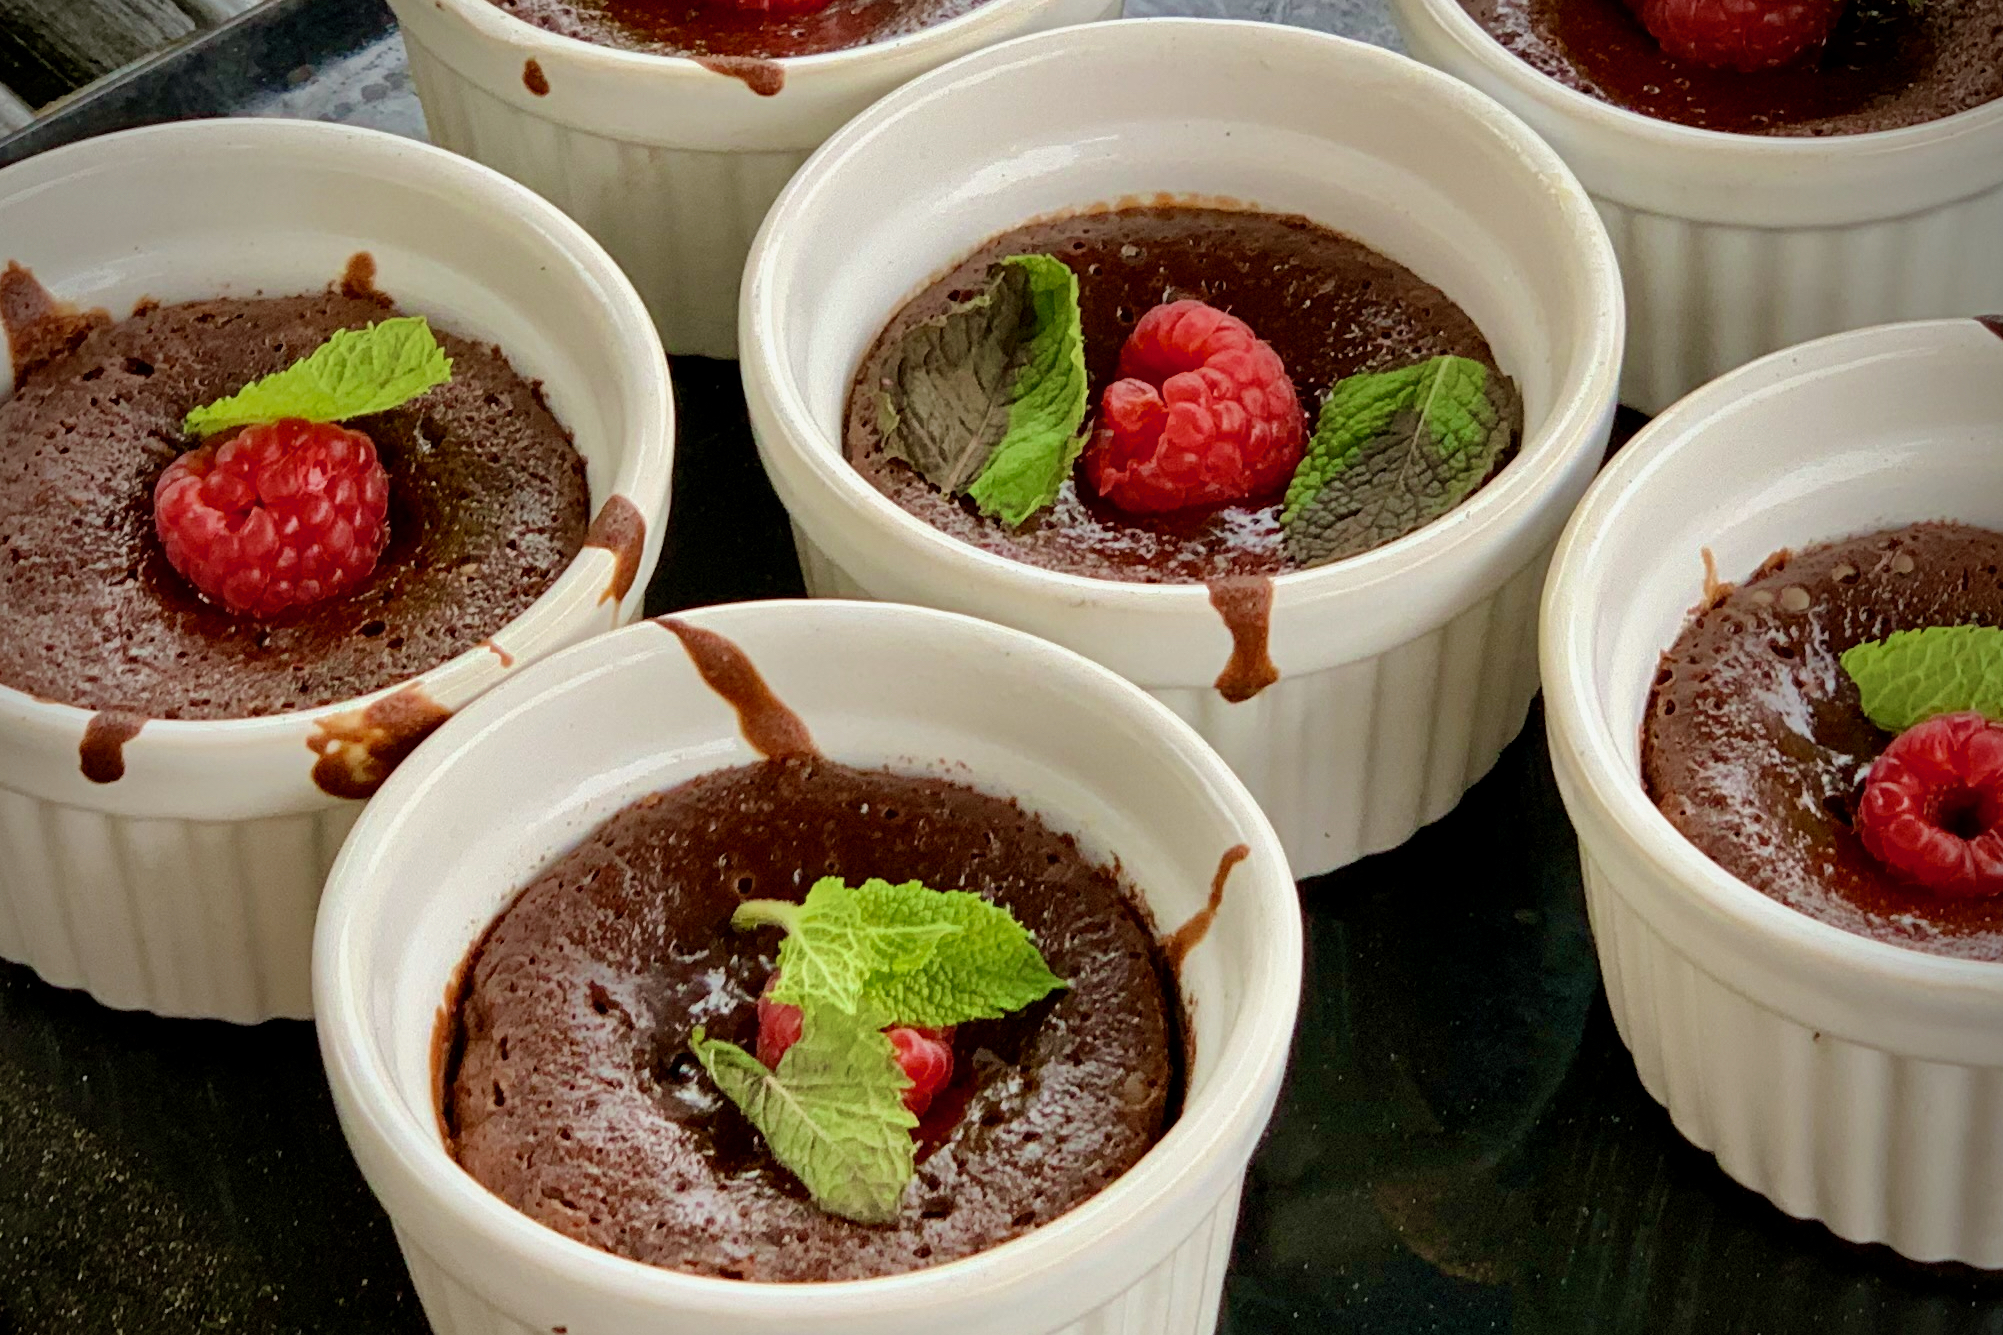 Gooey Chocolate Pudding